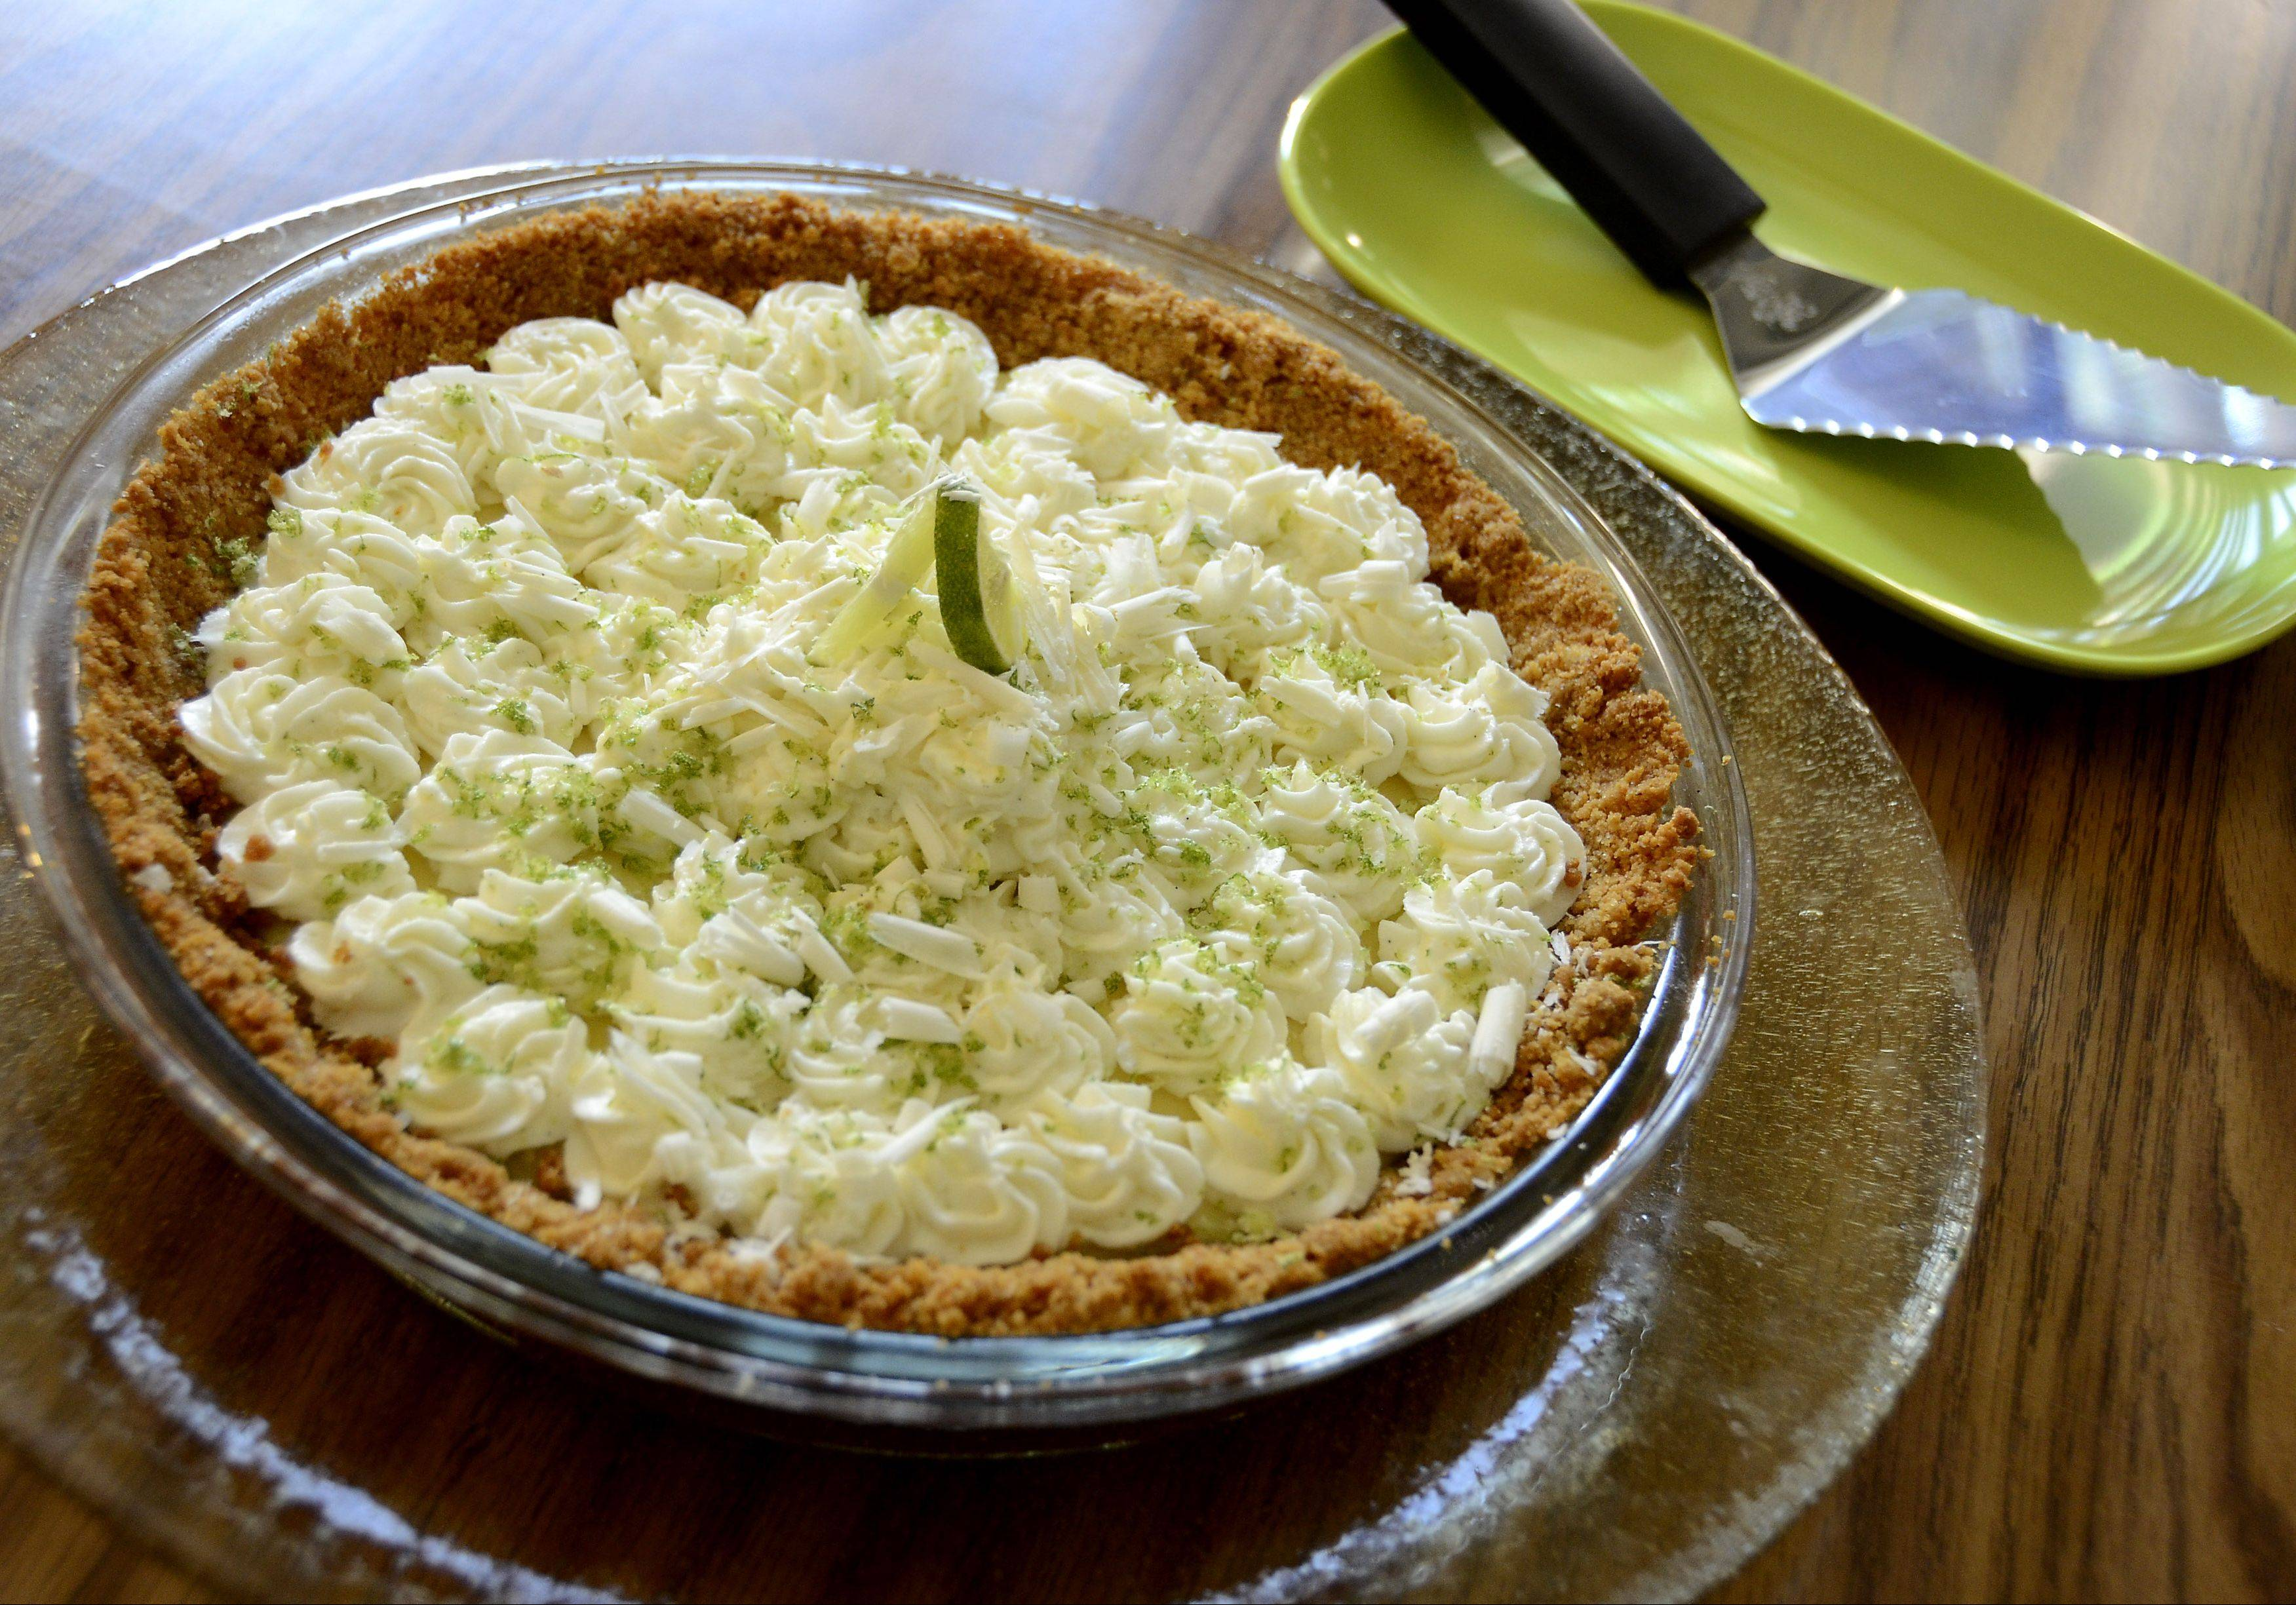 Buchholz doesn't have much of a sweet tooth, but that doesn't stop him from making Key Lime Pie for family and friends.